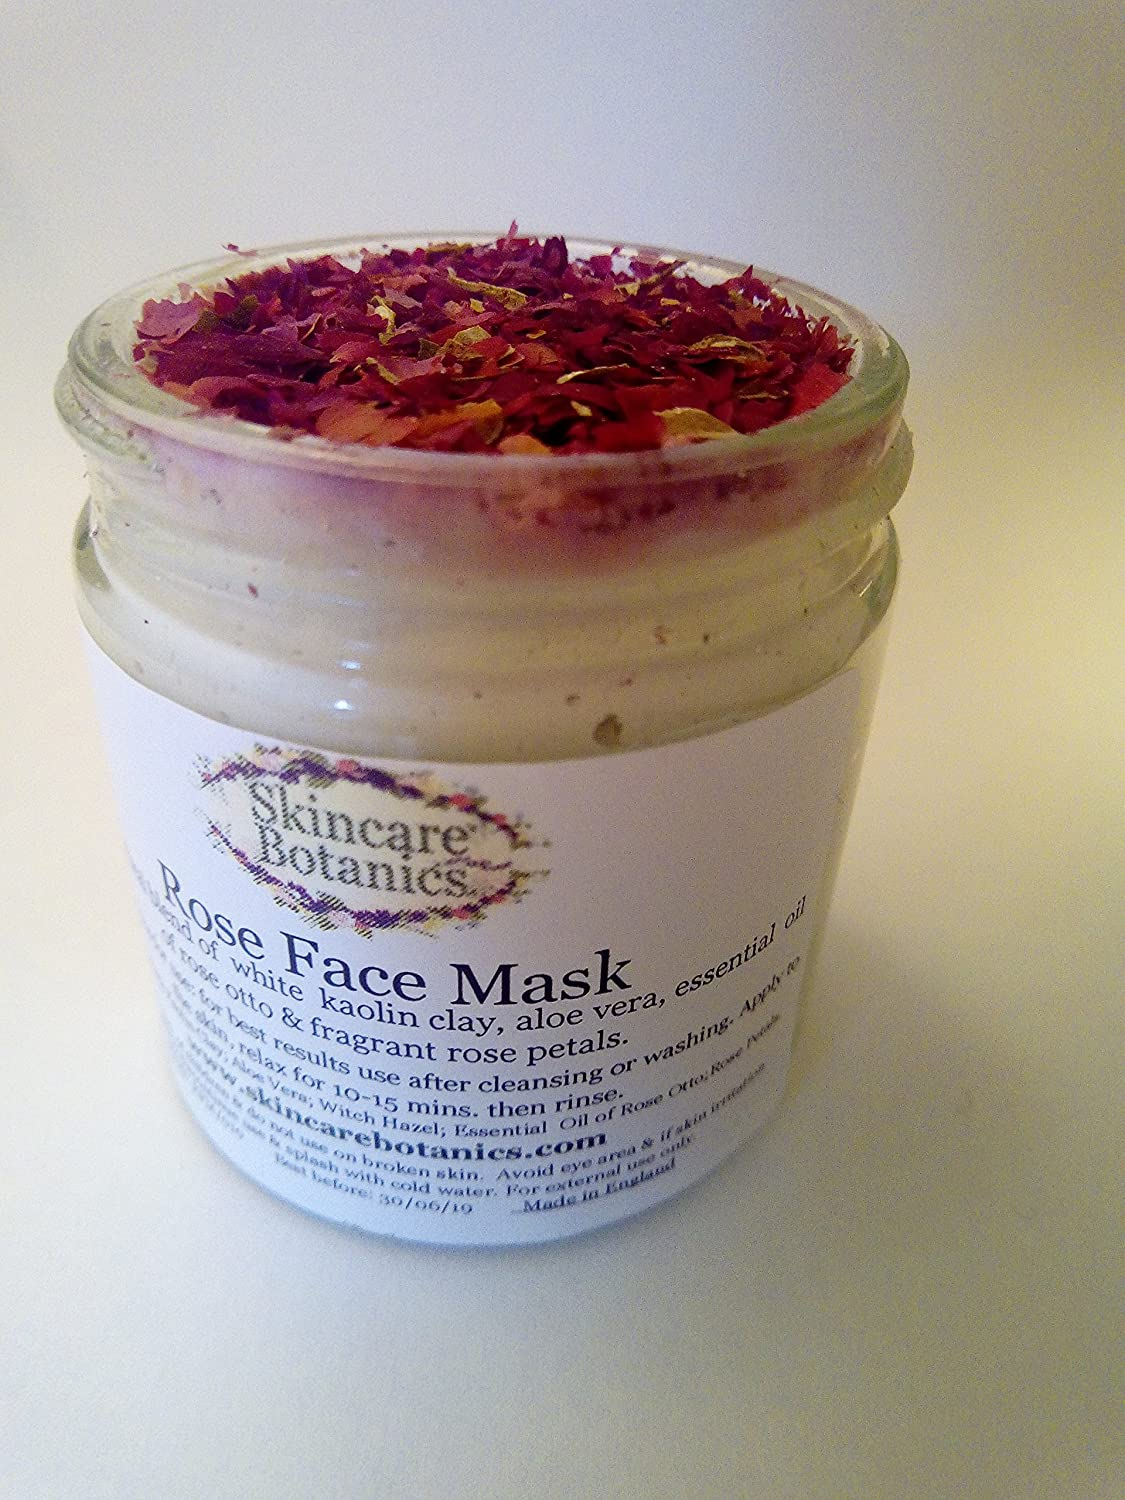 Aromatherapy All Natural & Organic Rose Face Mask | A luxurious & gentle face mask with Rose Petals & Essential Oil of Rose Otto | Balances & nourishes skin, gently clarifies, calms & protects | Crafted with pure Kaolin Clay, organic Ro